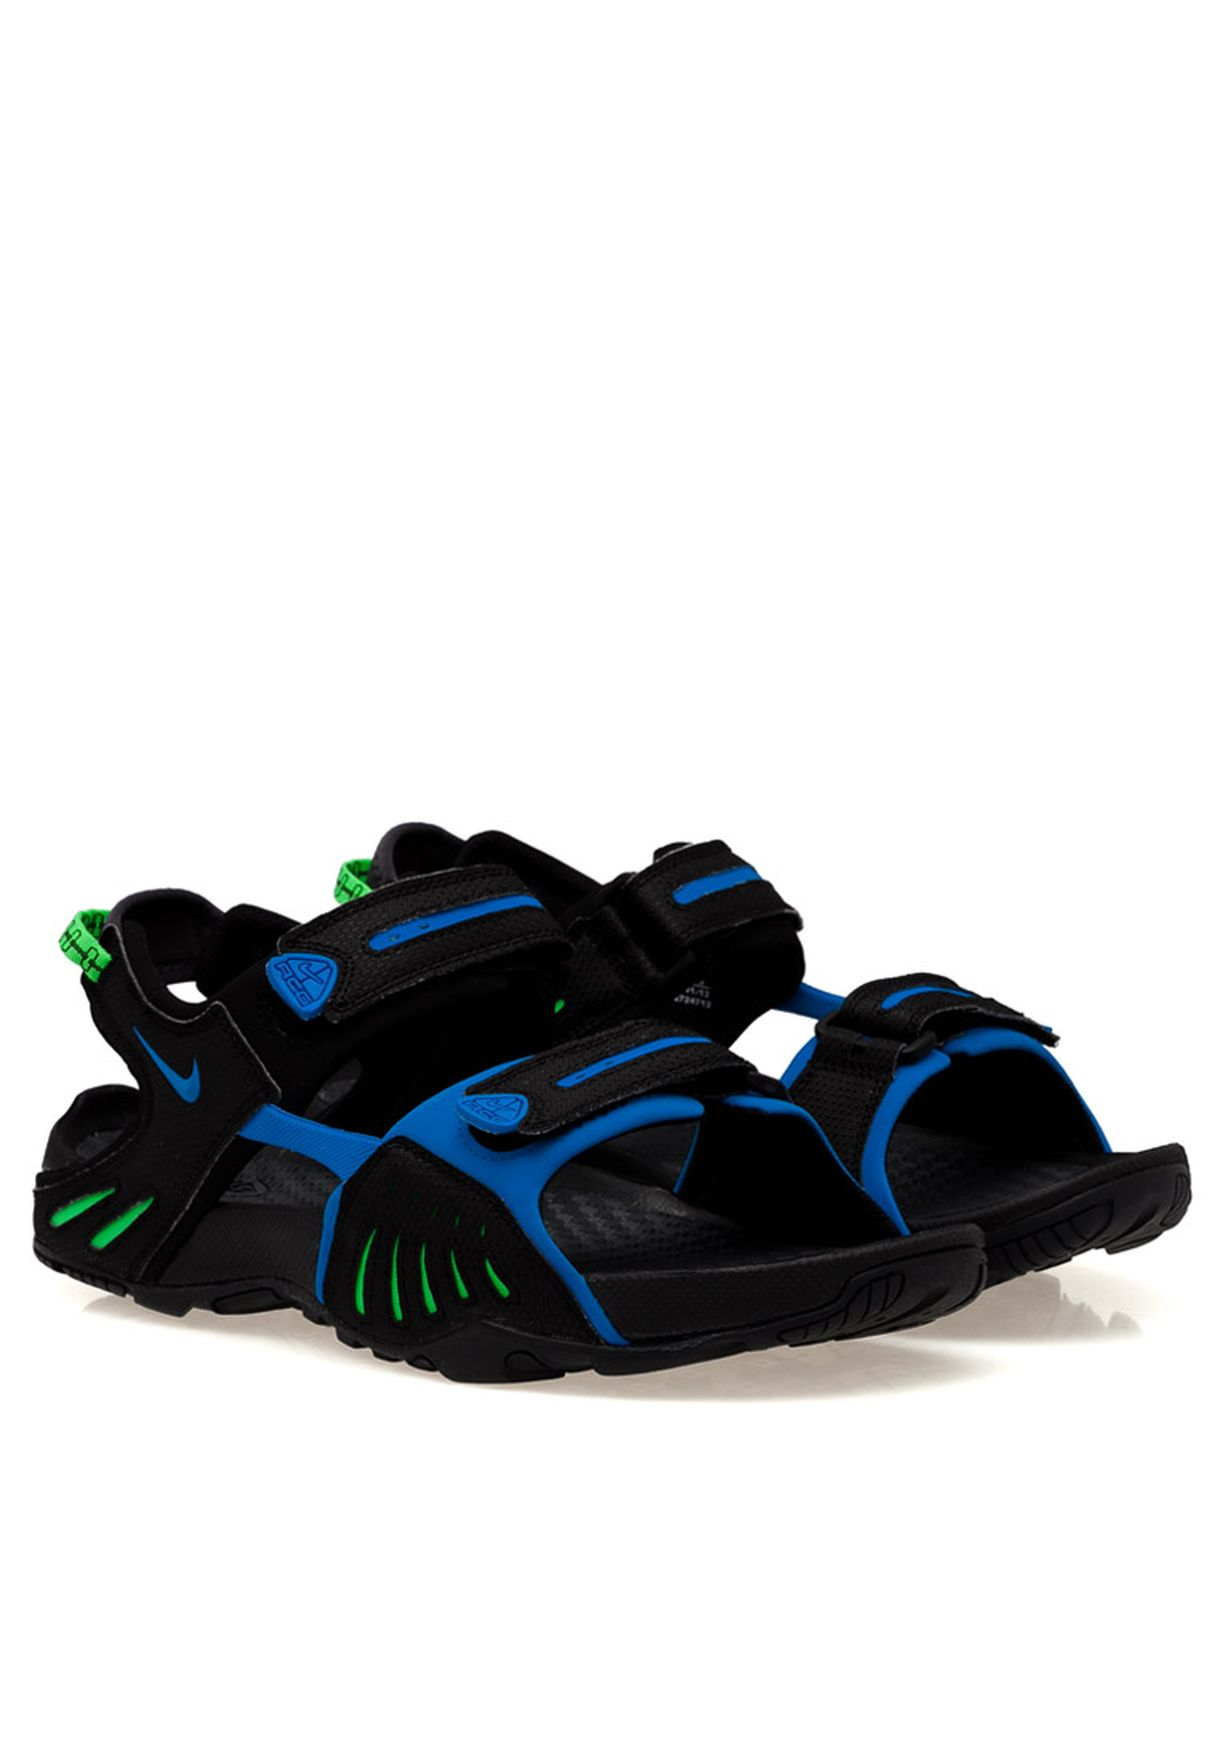 4686cab20ca1 Shop Nike black Santiam 4 Sandal 312839-043 for Men in UAE ...